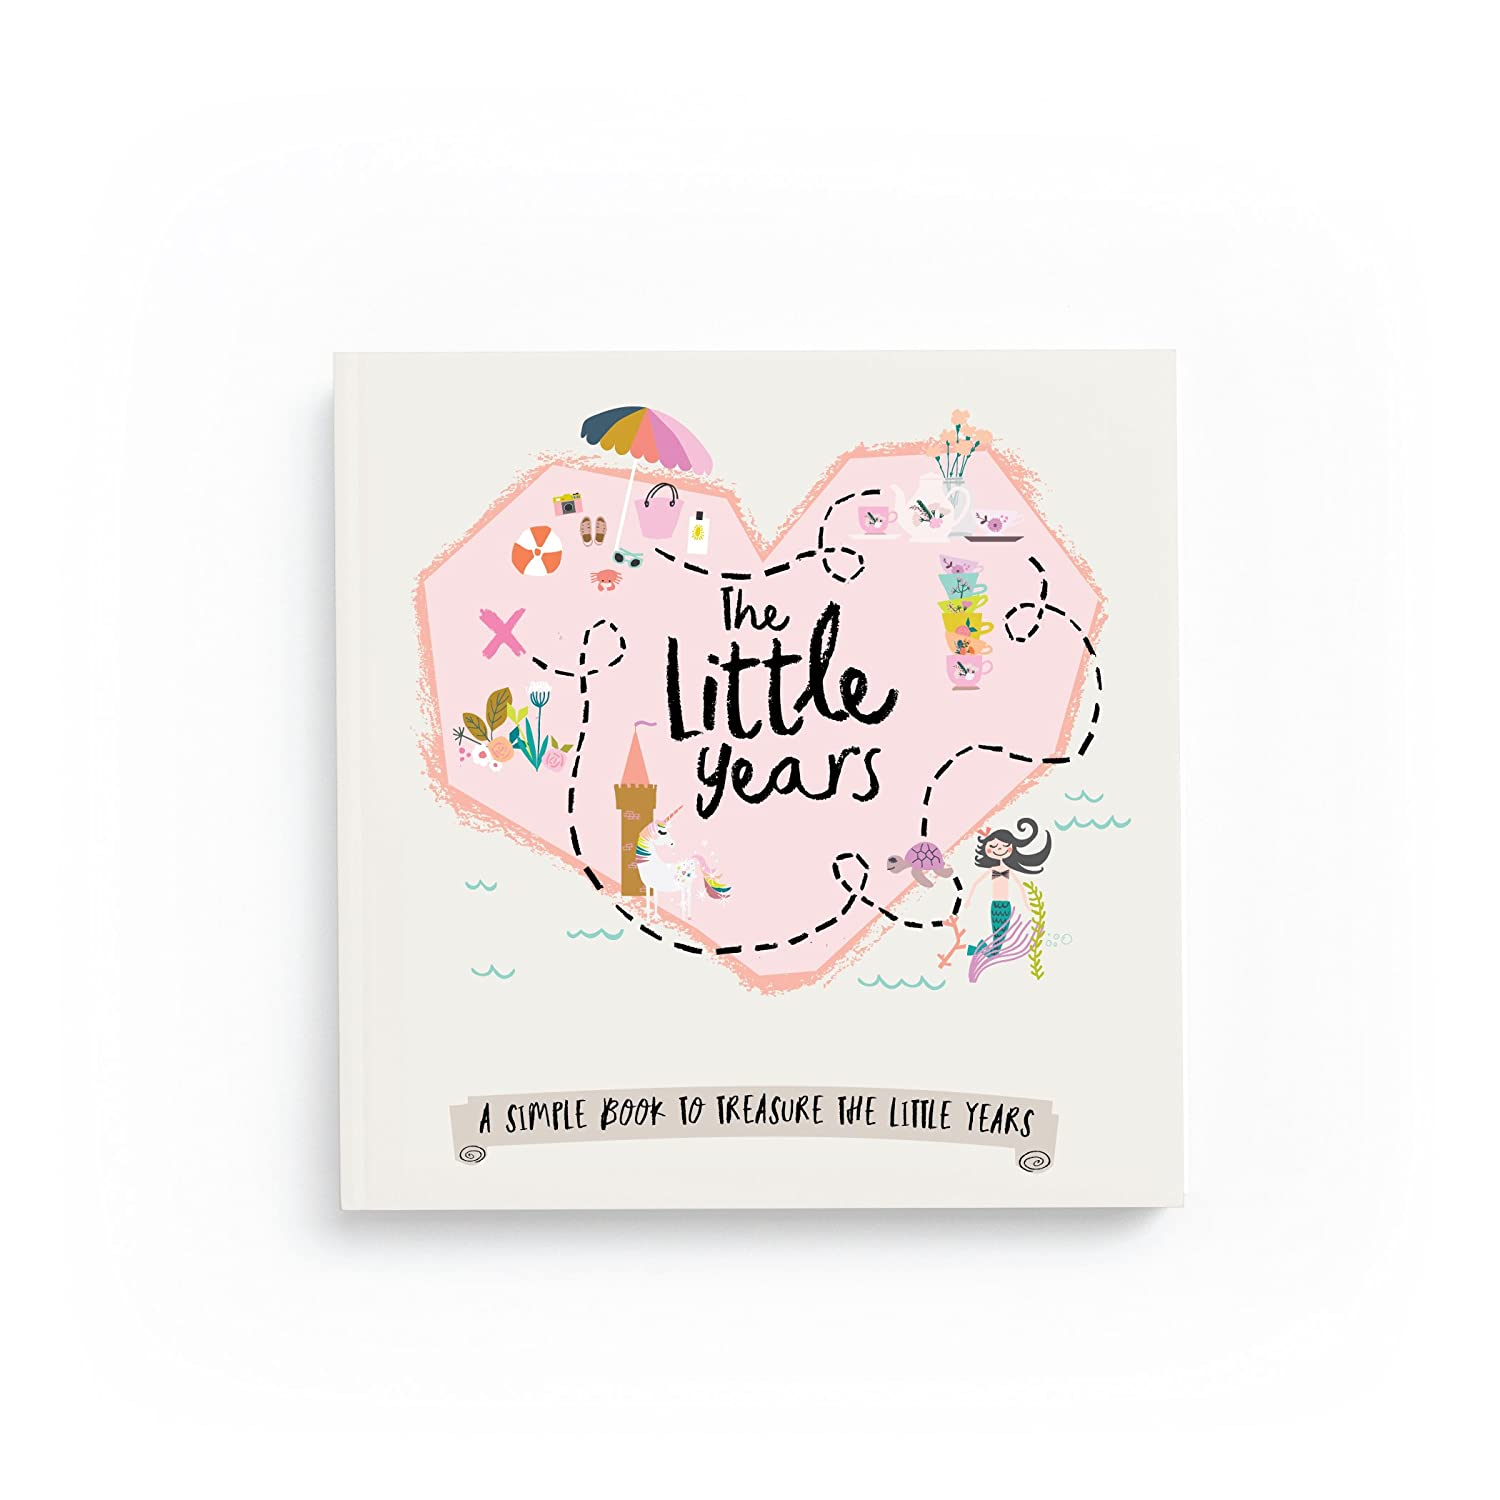 The Little Years Toddler Book-Girl Lucy Darling